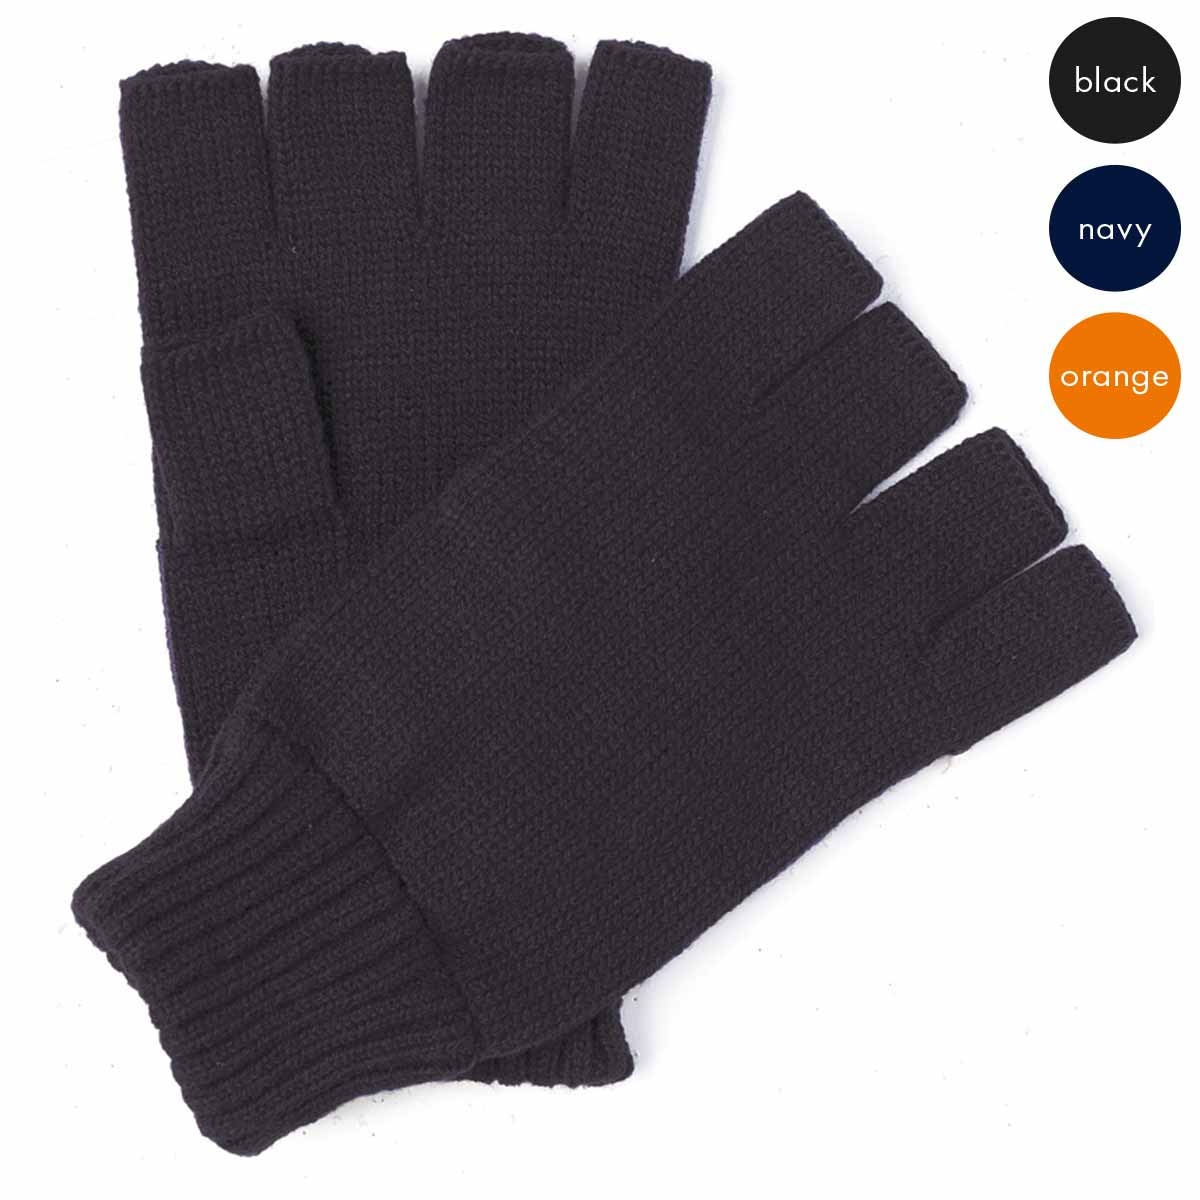 Regatta Knitted Fingerless Gloves RGLA202